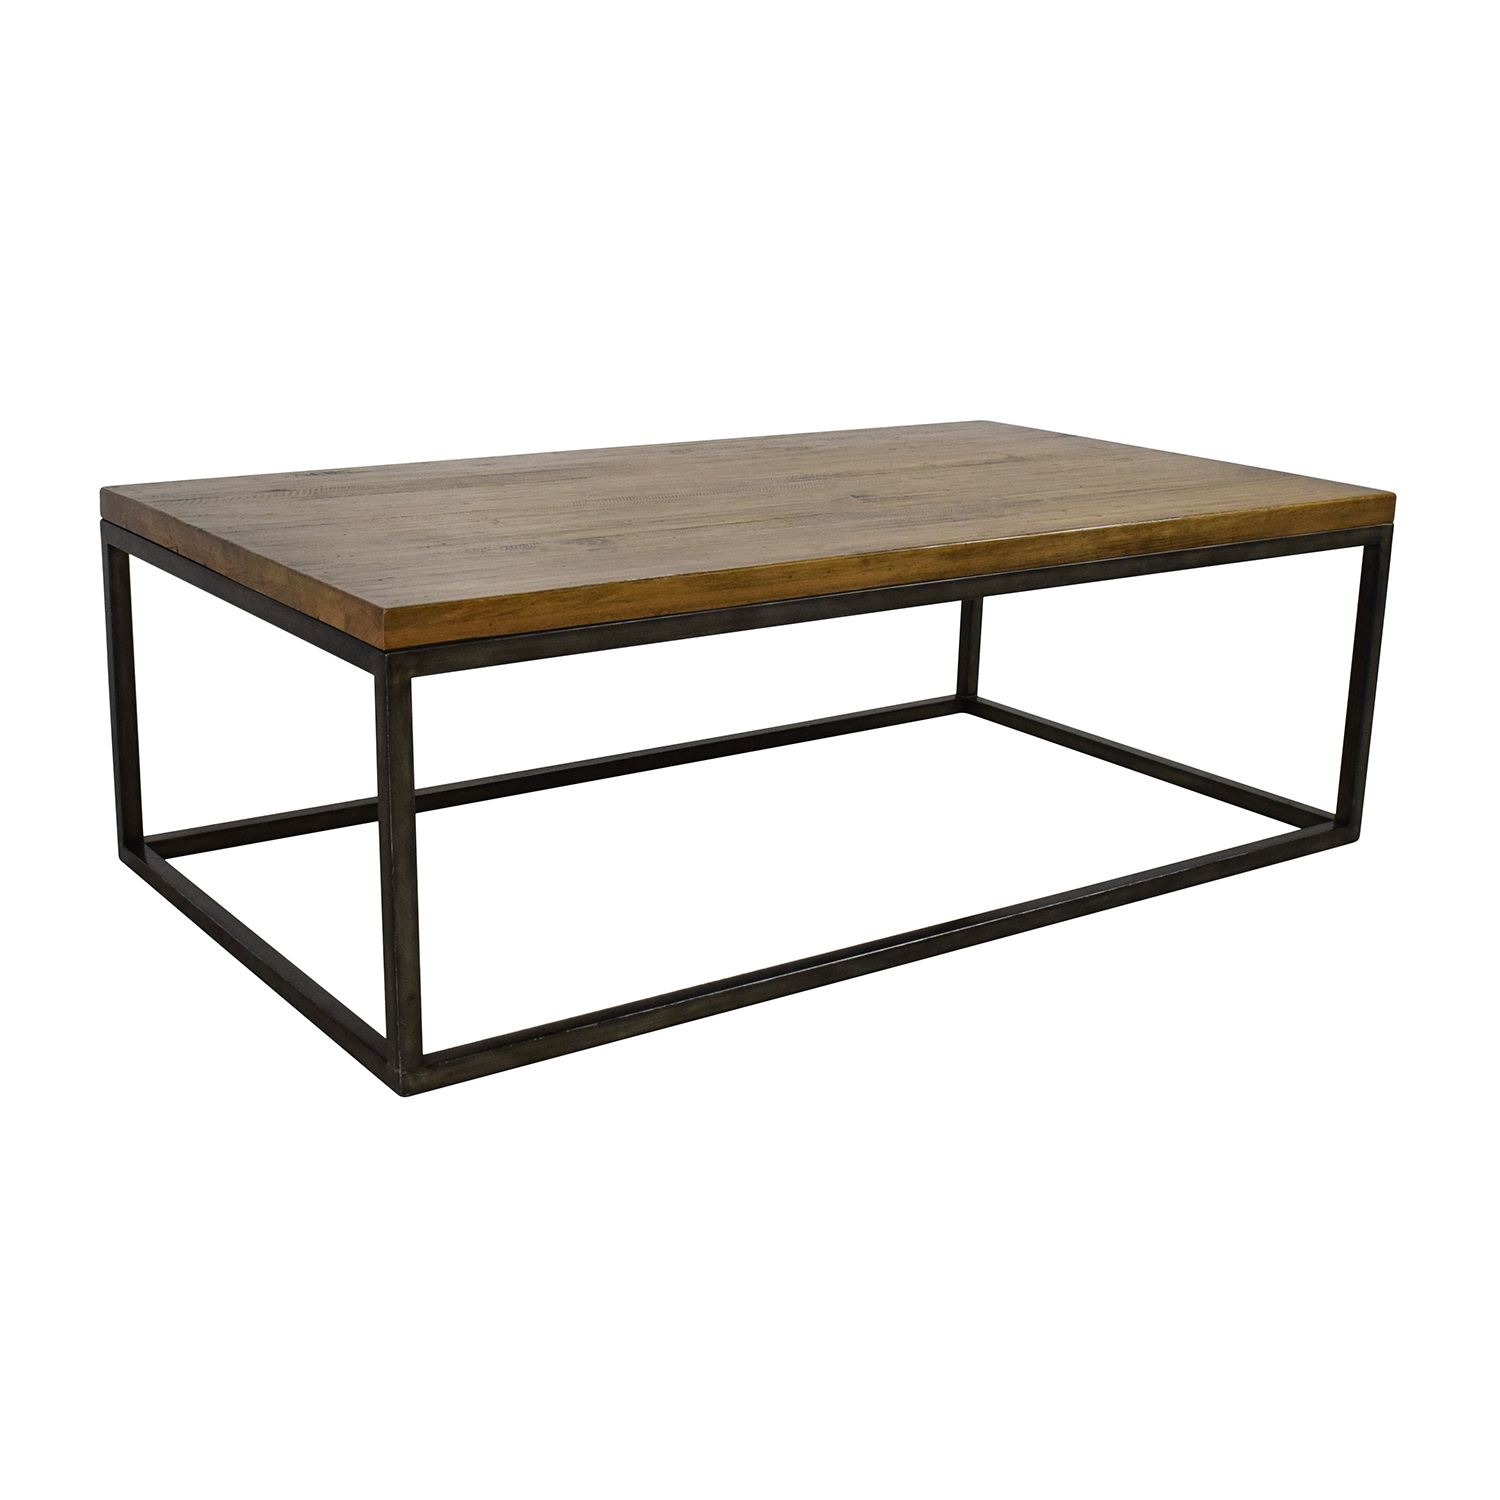 ... West Elm Box Frame Coffee Table / Tables ... - 51% OFF - West Elm West Elm Box Frame Coffee Table / Tables